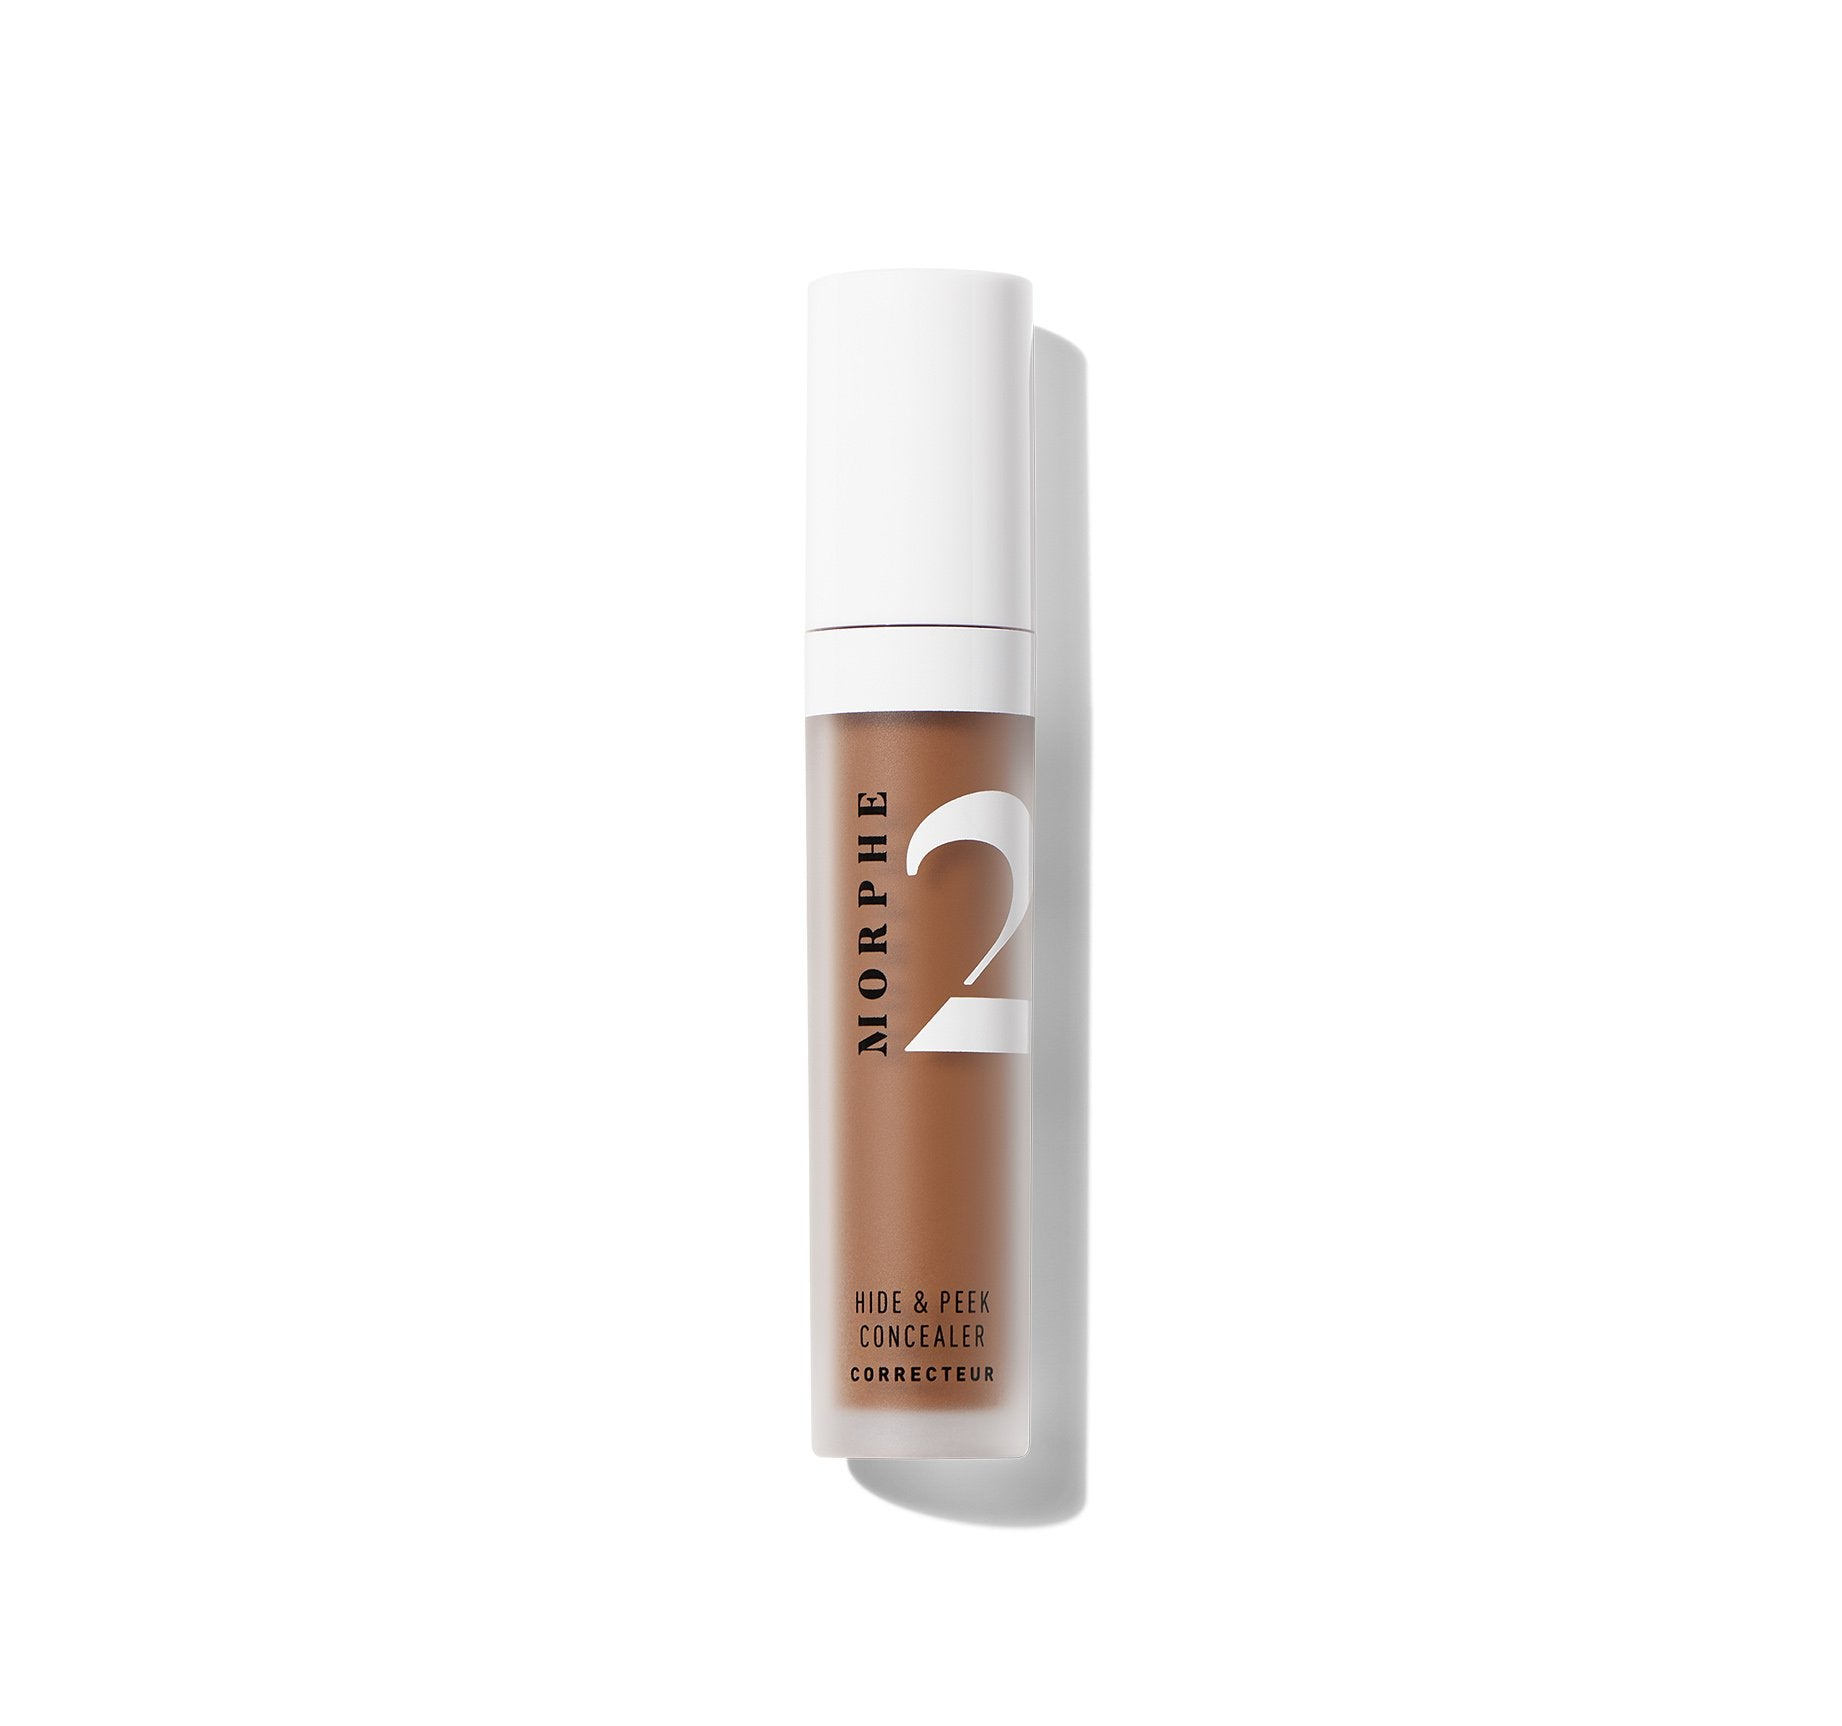 HIDE & PEEK CONCEALER - PEEK OF COFFEE, view larger image